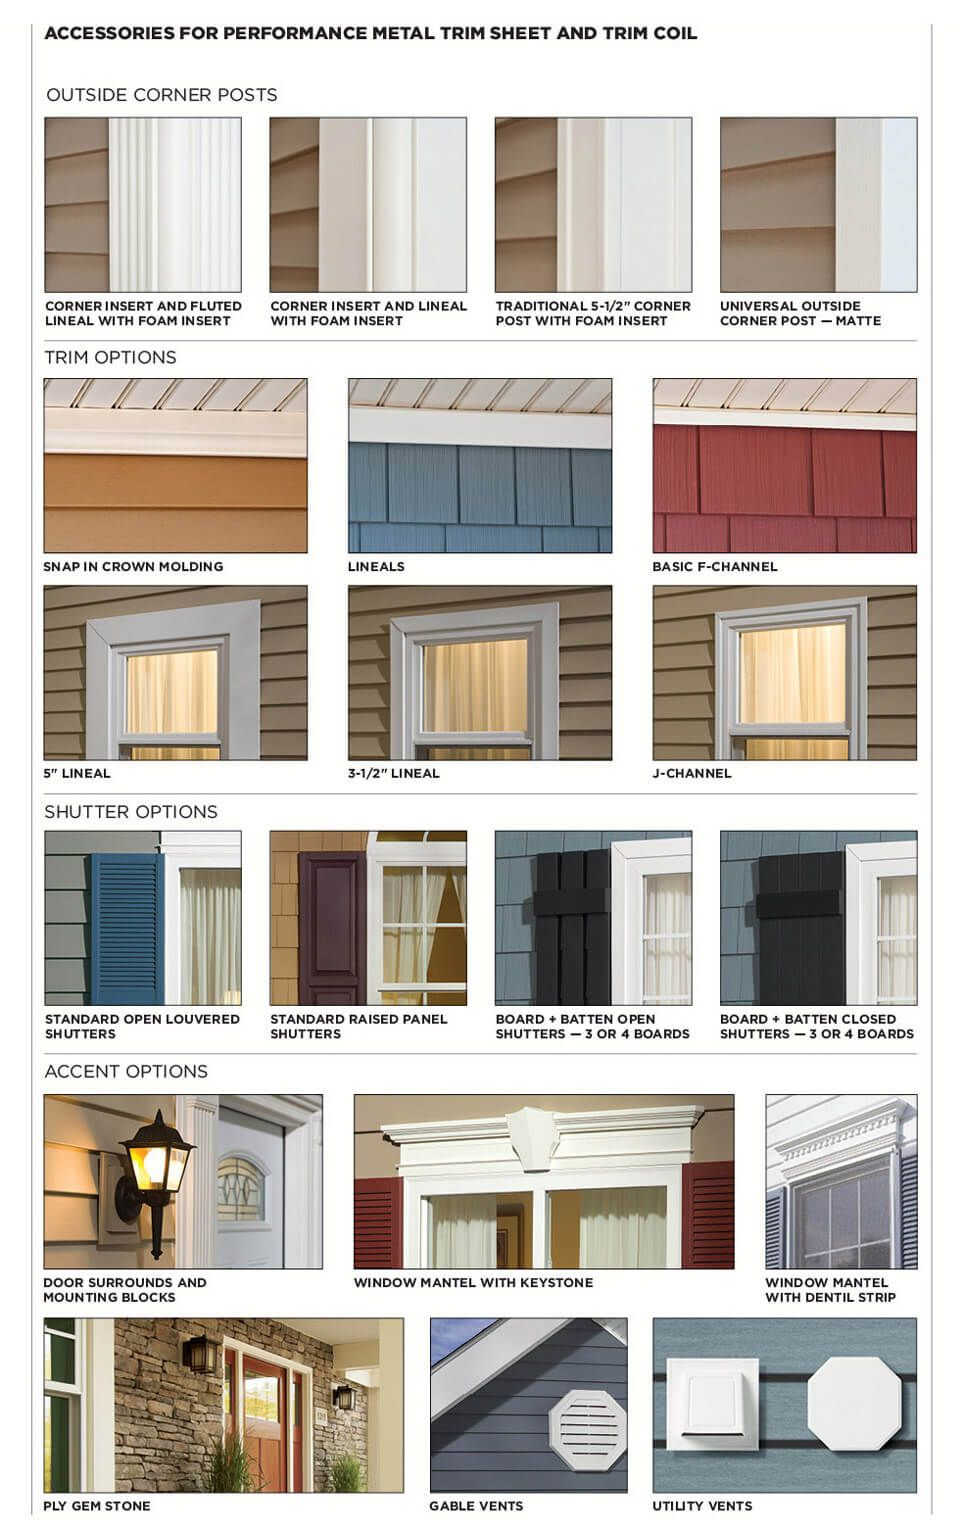 Mastic Aluminum Trim Sheet And Trim Coil Mastic Home Exteriors House Exterior Outdoor Remodel Shingle Siding